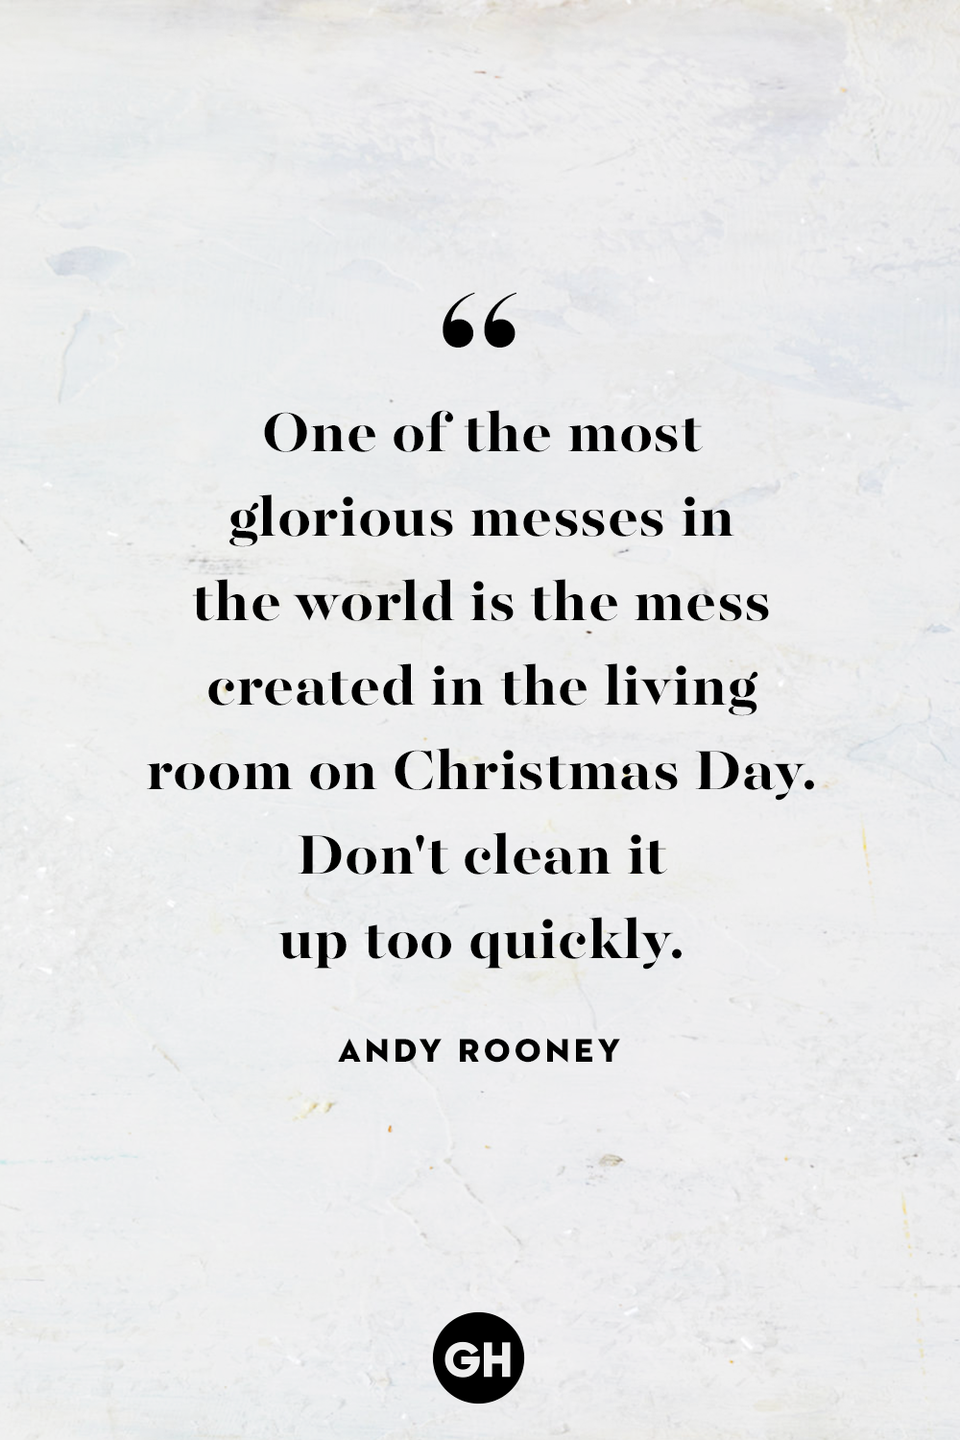 <p>One of the most glorious messes in the world is the mess created in the living room on Christmas Day. Don't clean it up too quickly. <br></p>